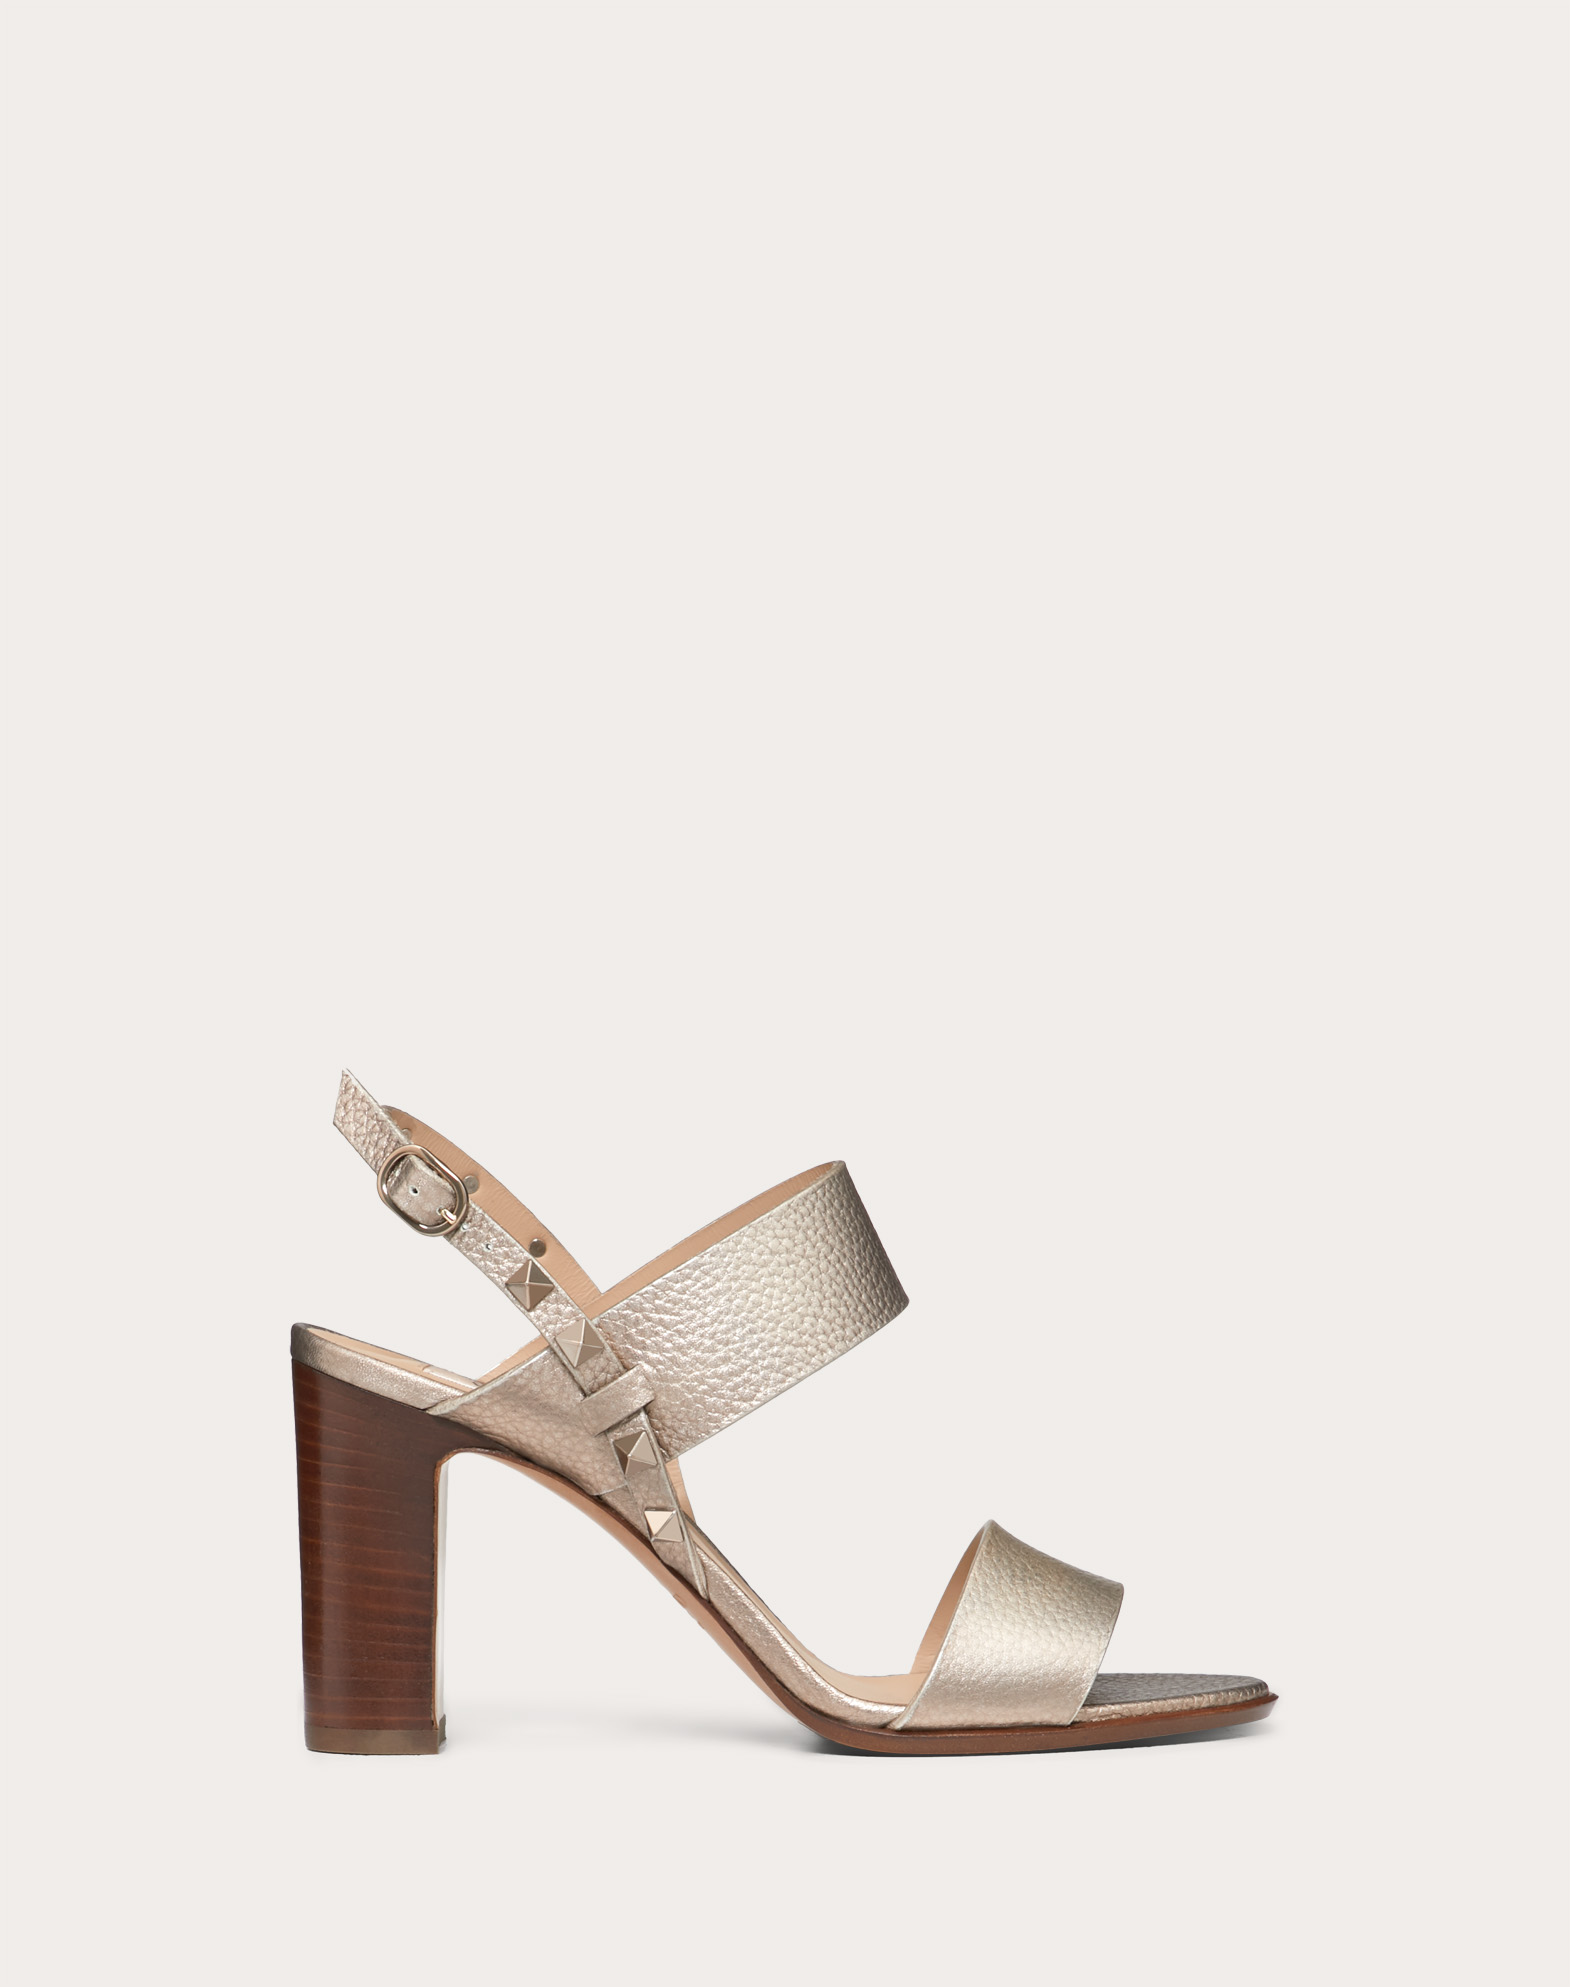 Rockstud Double Laminated Grainy Calfskin Sandal 85 mm